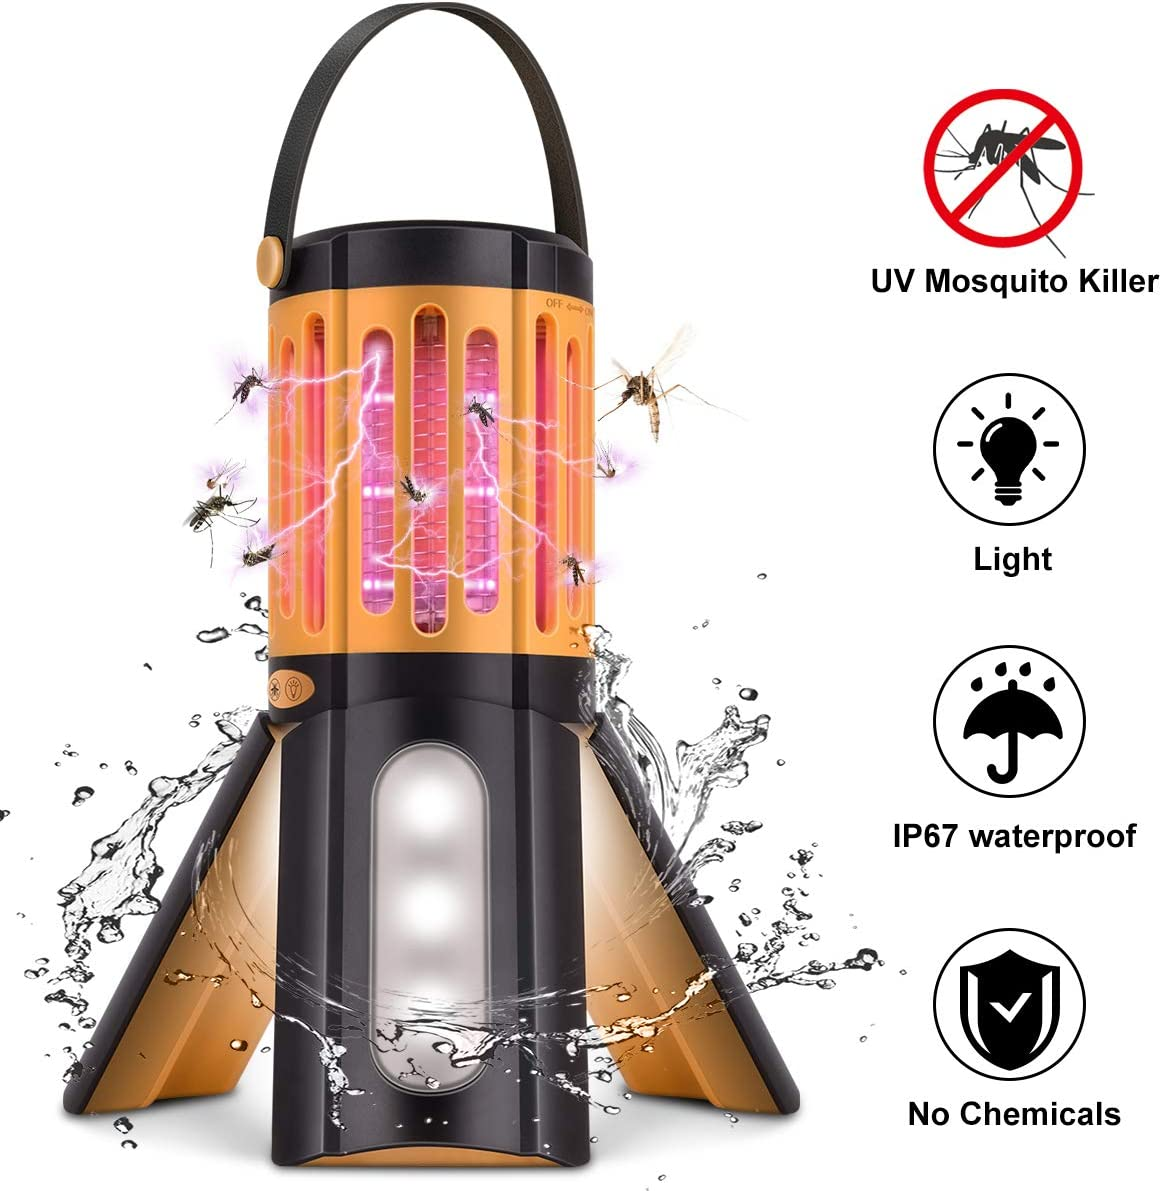 COKIT Bug Zapper LED Camping Lantern 2 in 1,Tripod Tent Light with Hook Portable Indoor Outdoor Mosquito Killer Fly Zappers Waterproof Compact UV Insect Trap Lamp